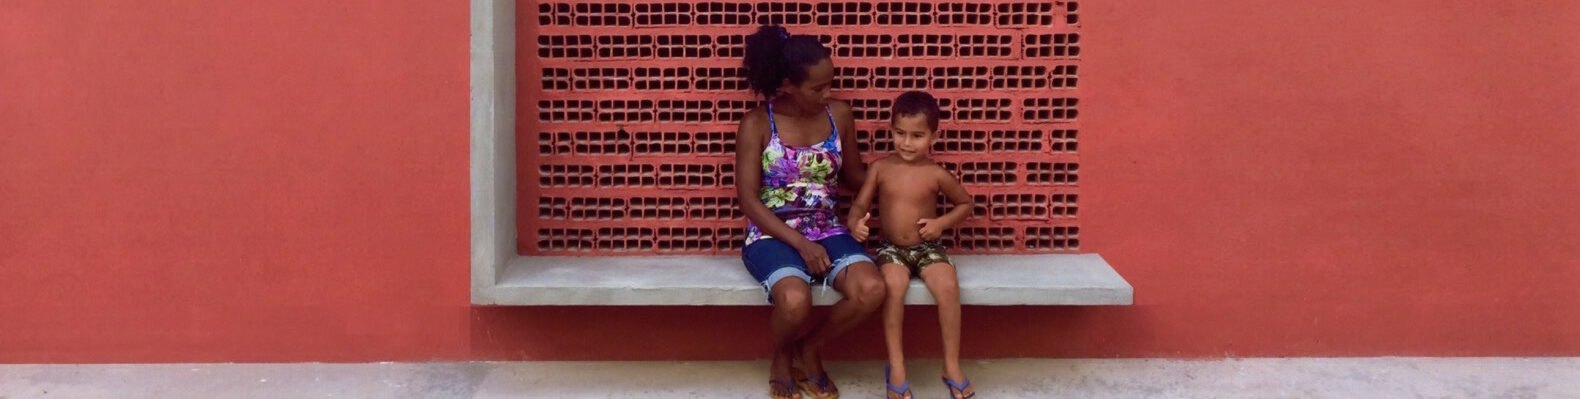 a red wall with a bench structure that a woman and child are citting on. a square cut-out behind them has a dotted pattern on the wall